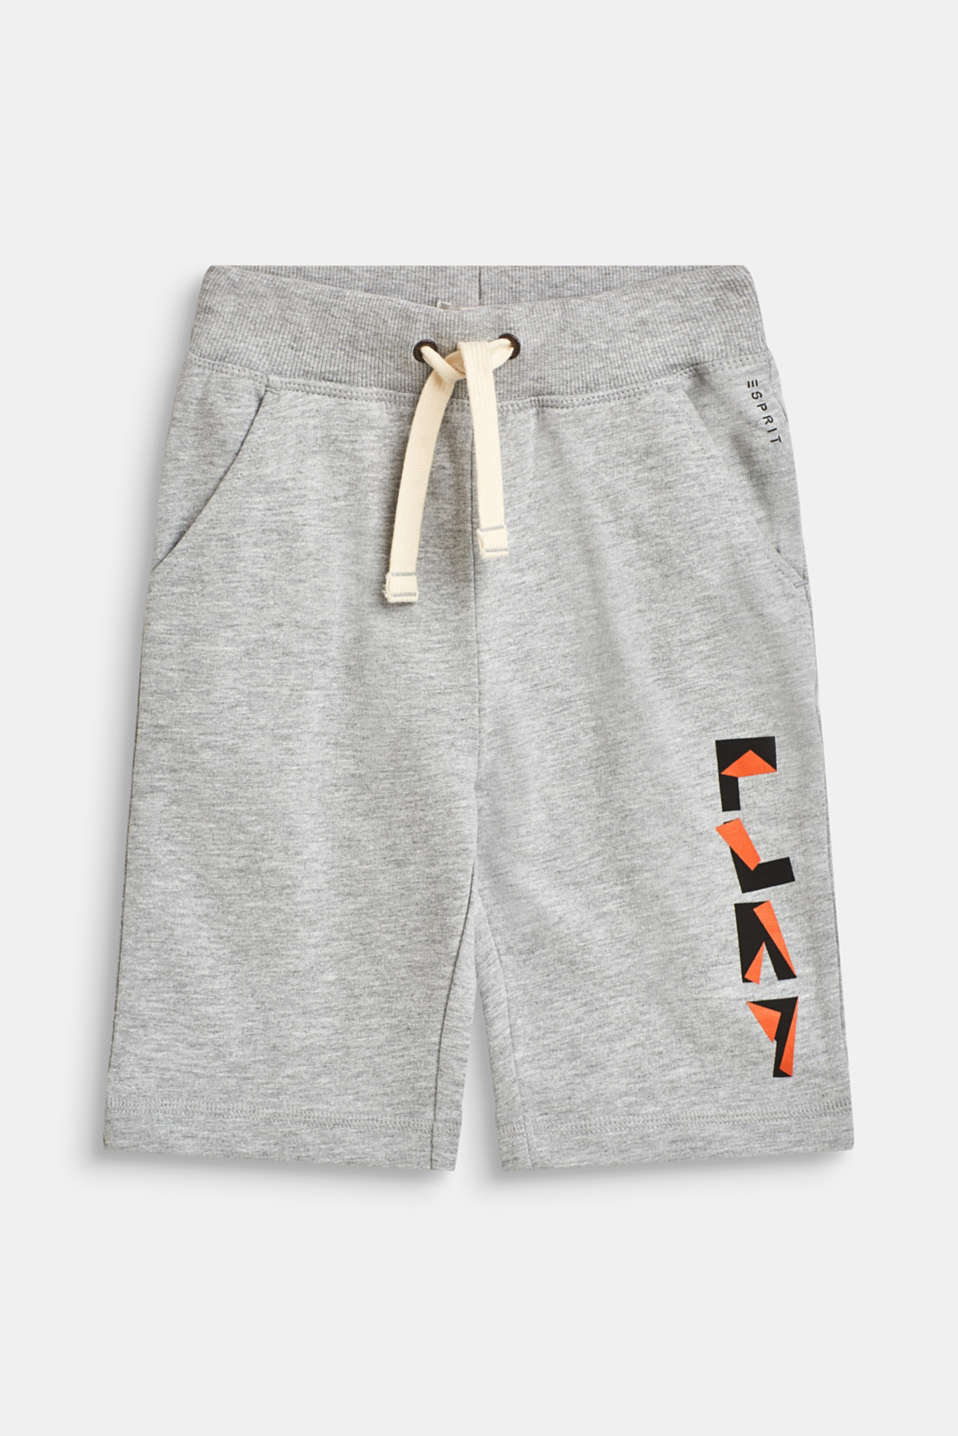 Sweatshirt shorts in 100% cotton, HEATHER SILVER, detail image number 0